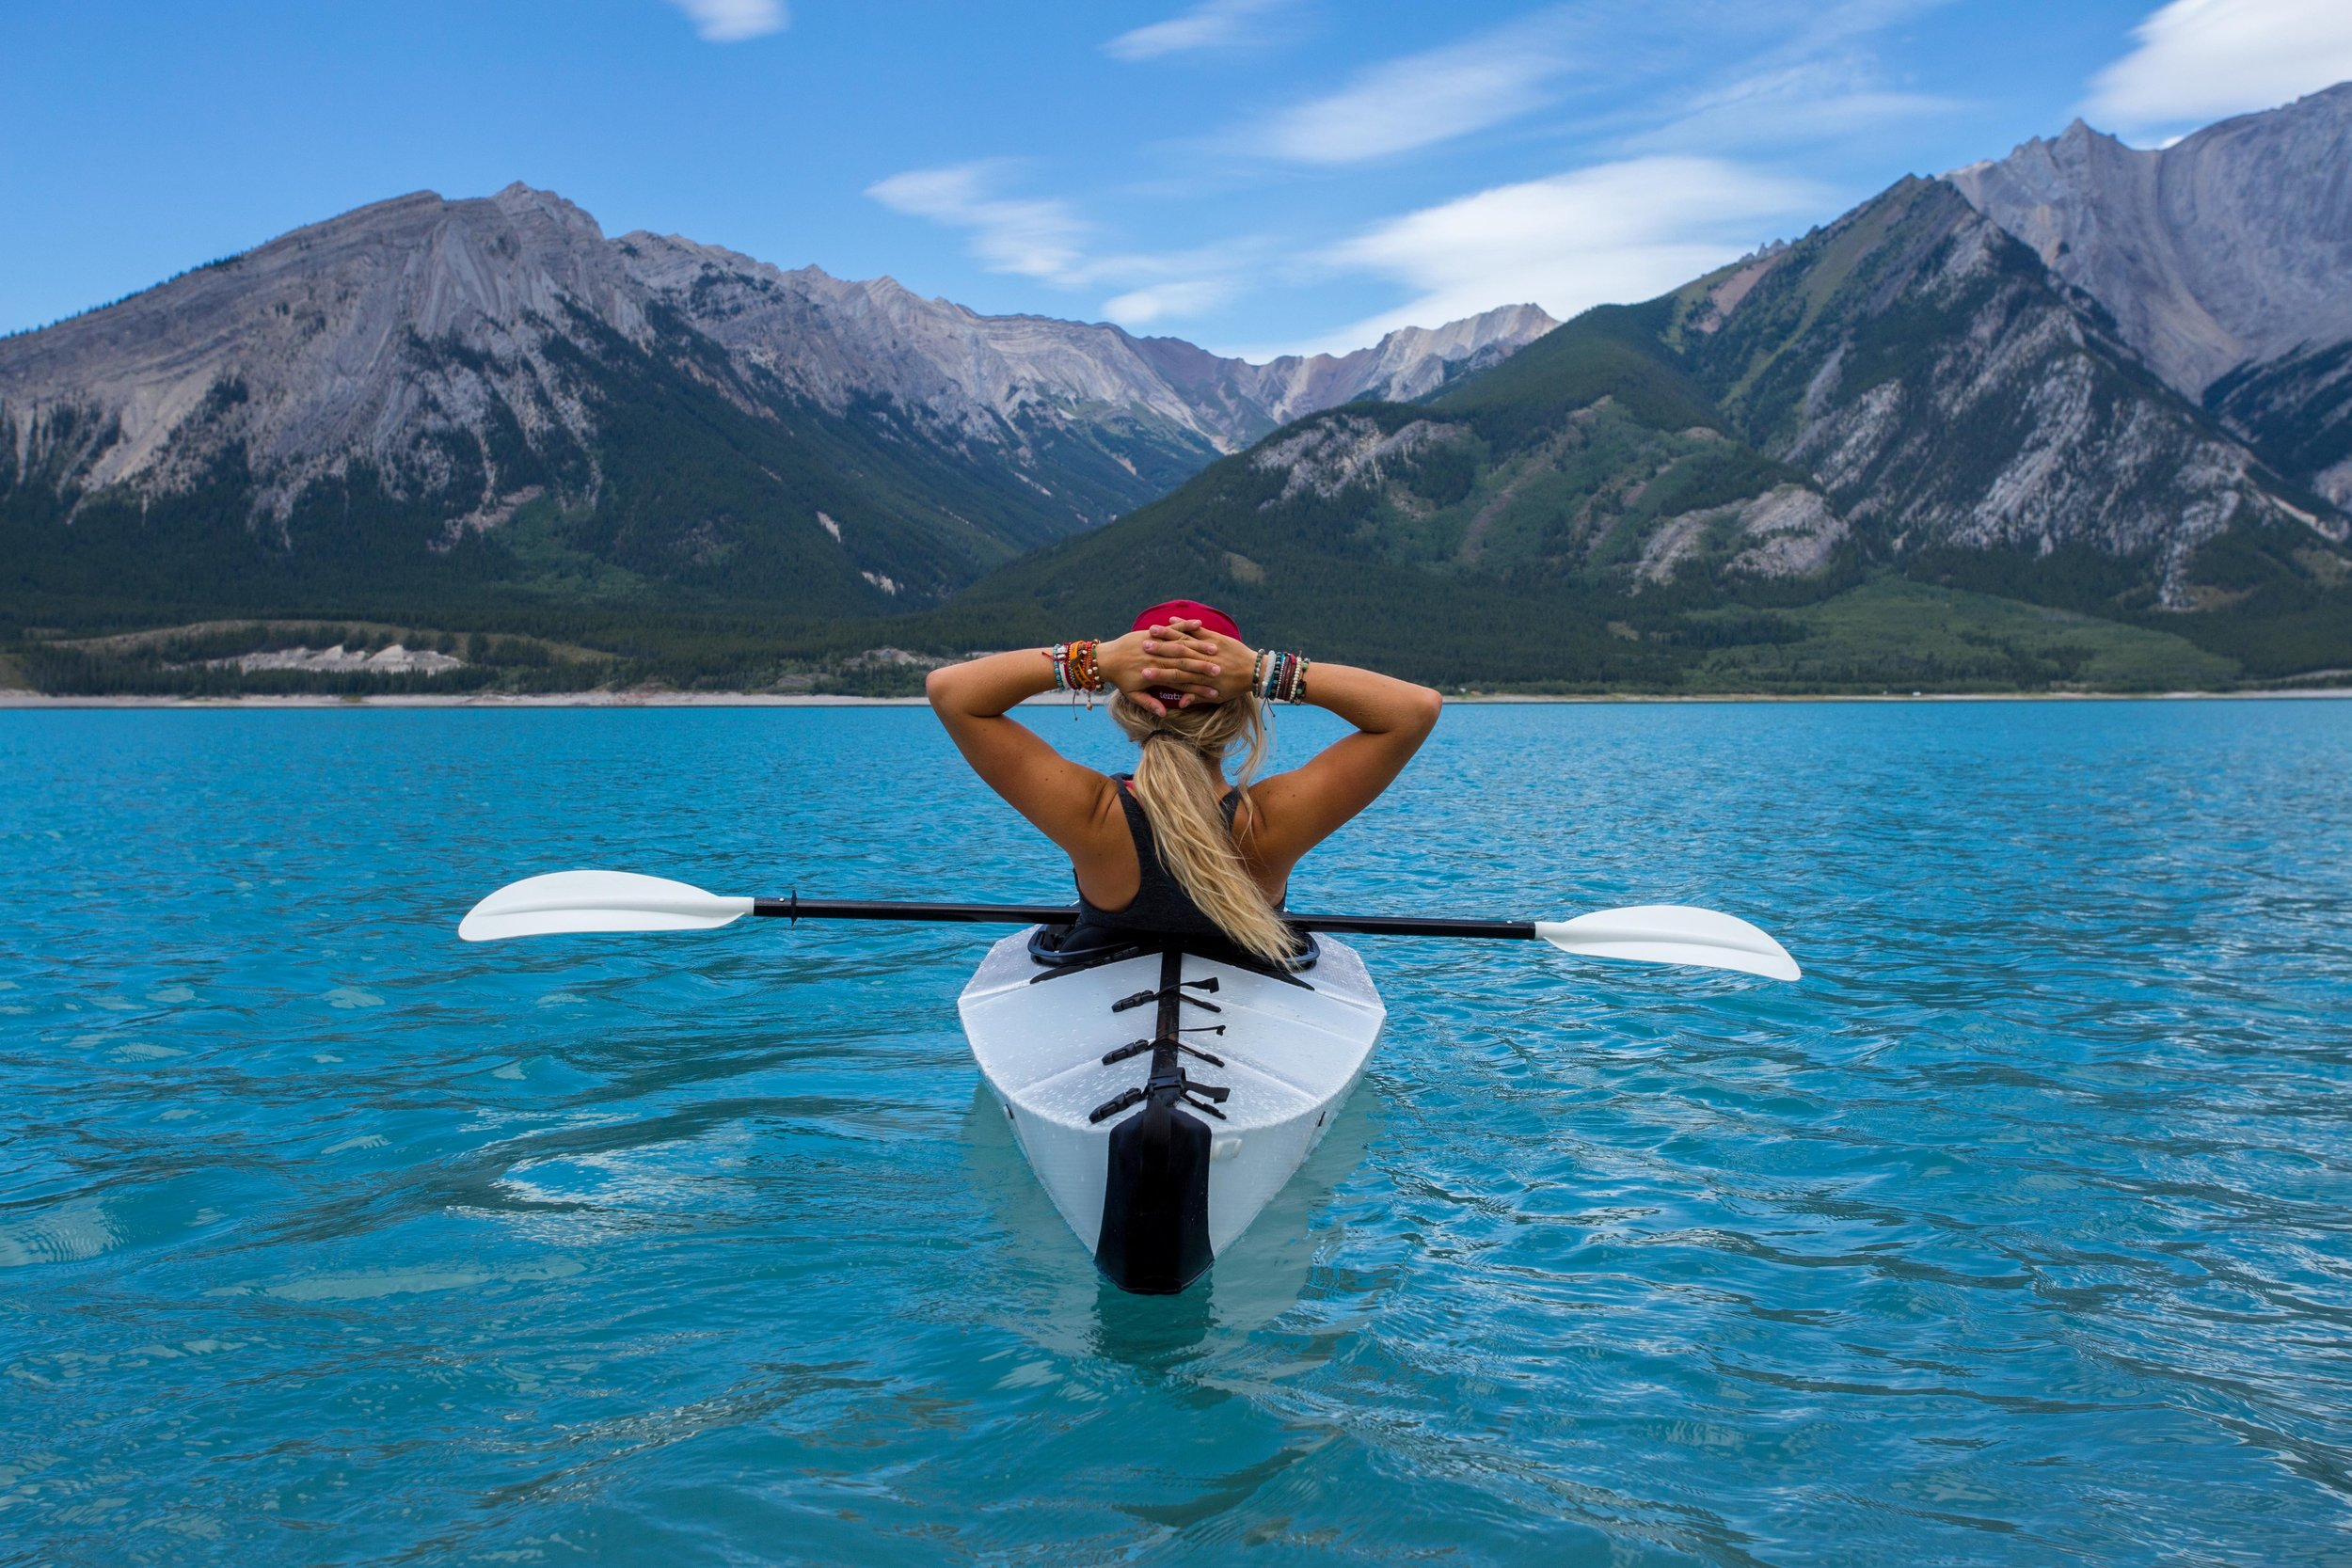 rower woman mountains.jpg